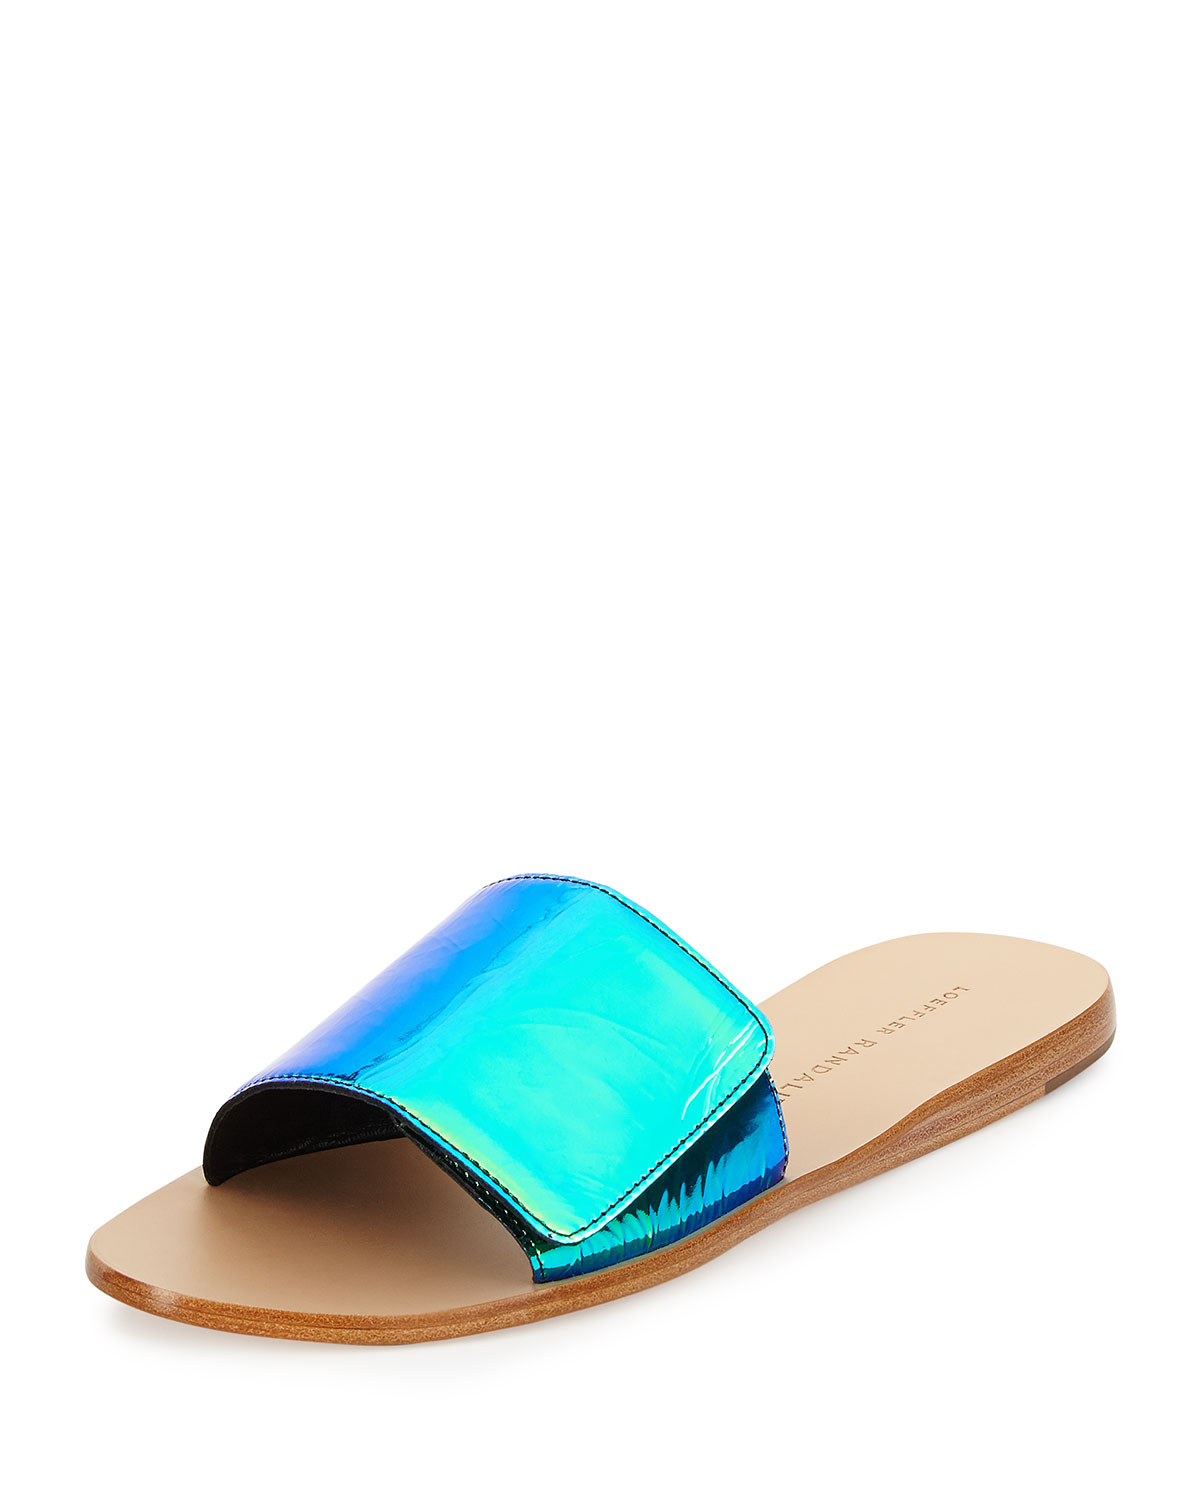 Sibi Iridescent Sandal Slide, Acid